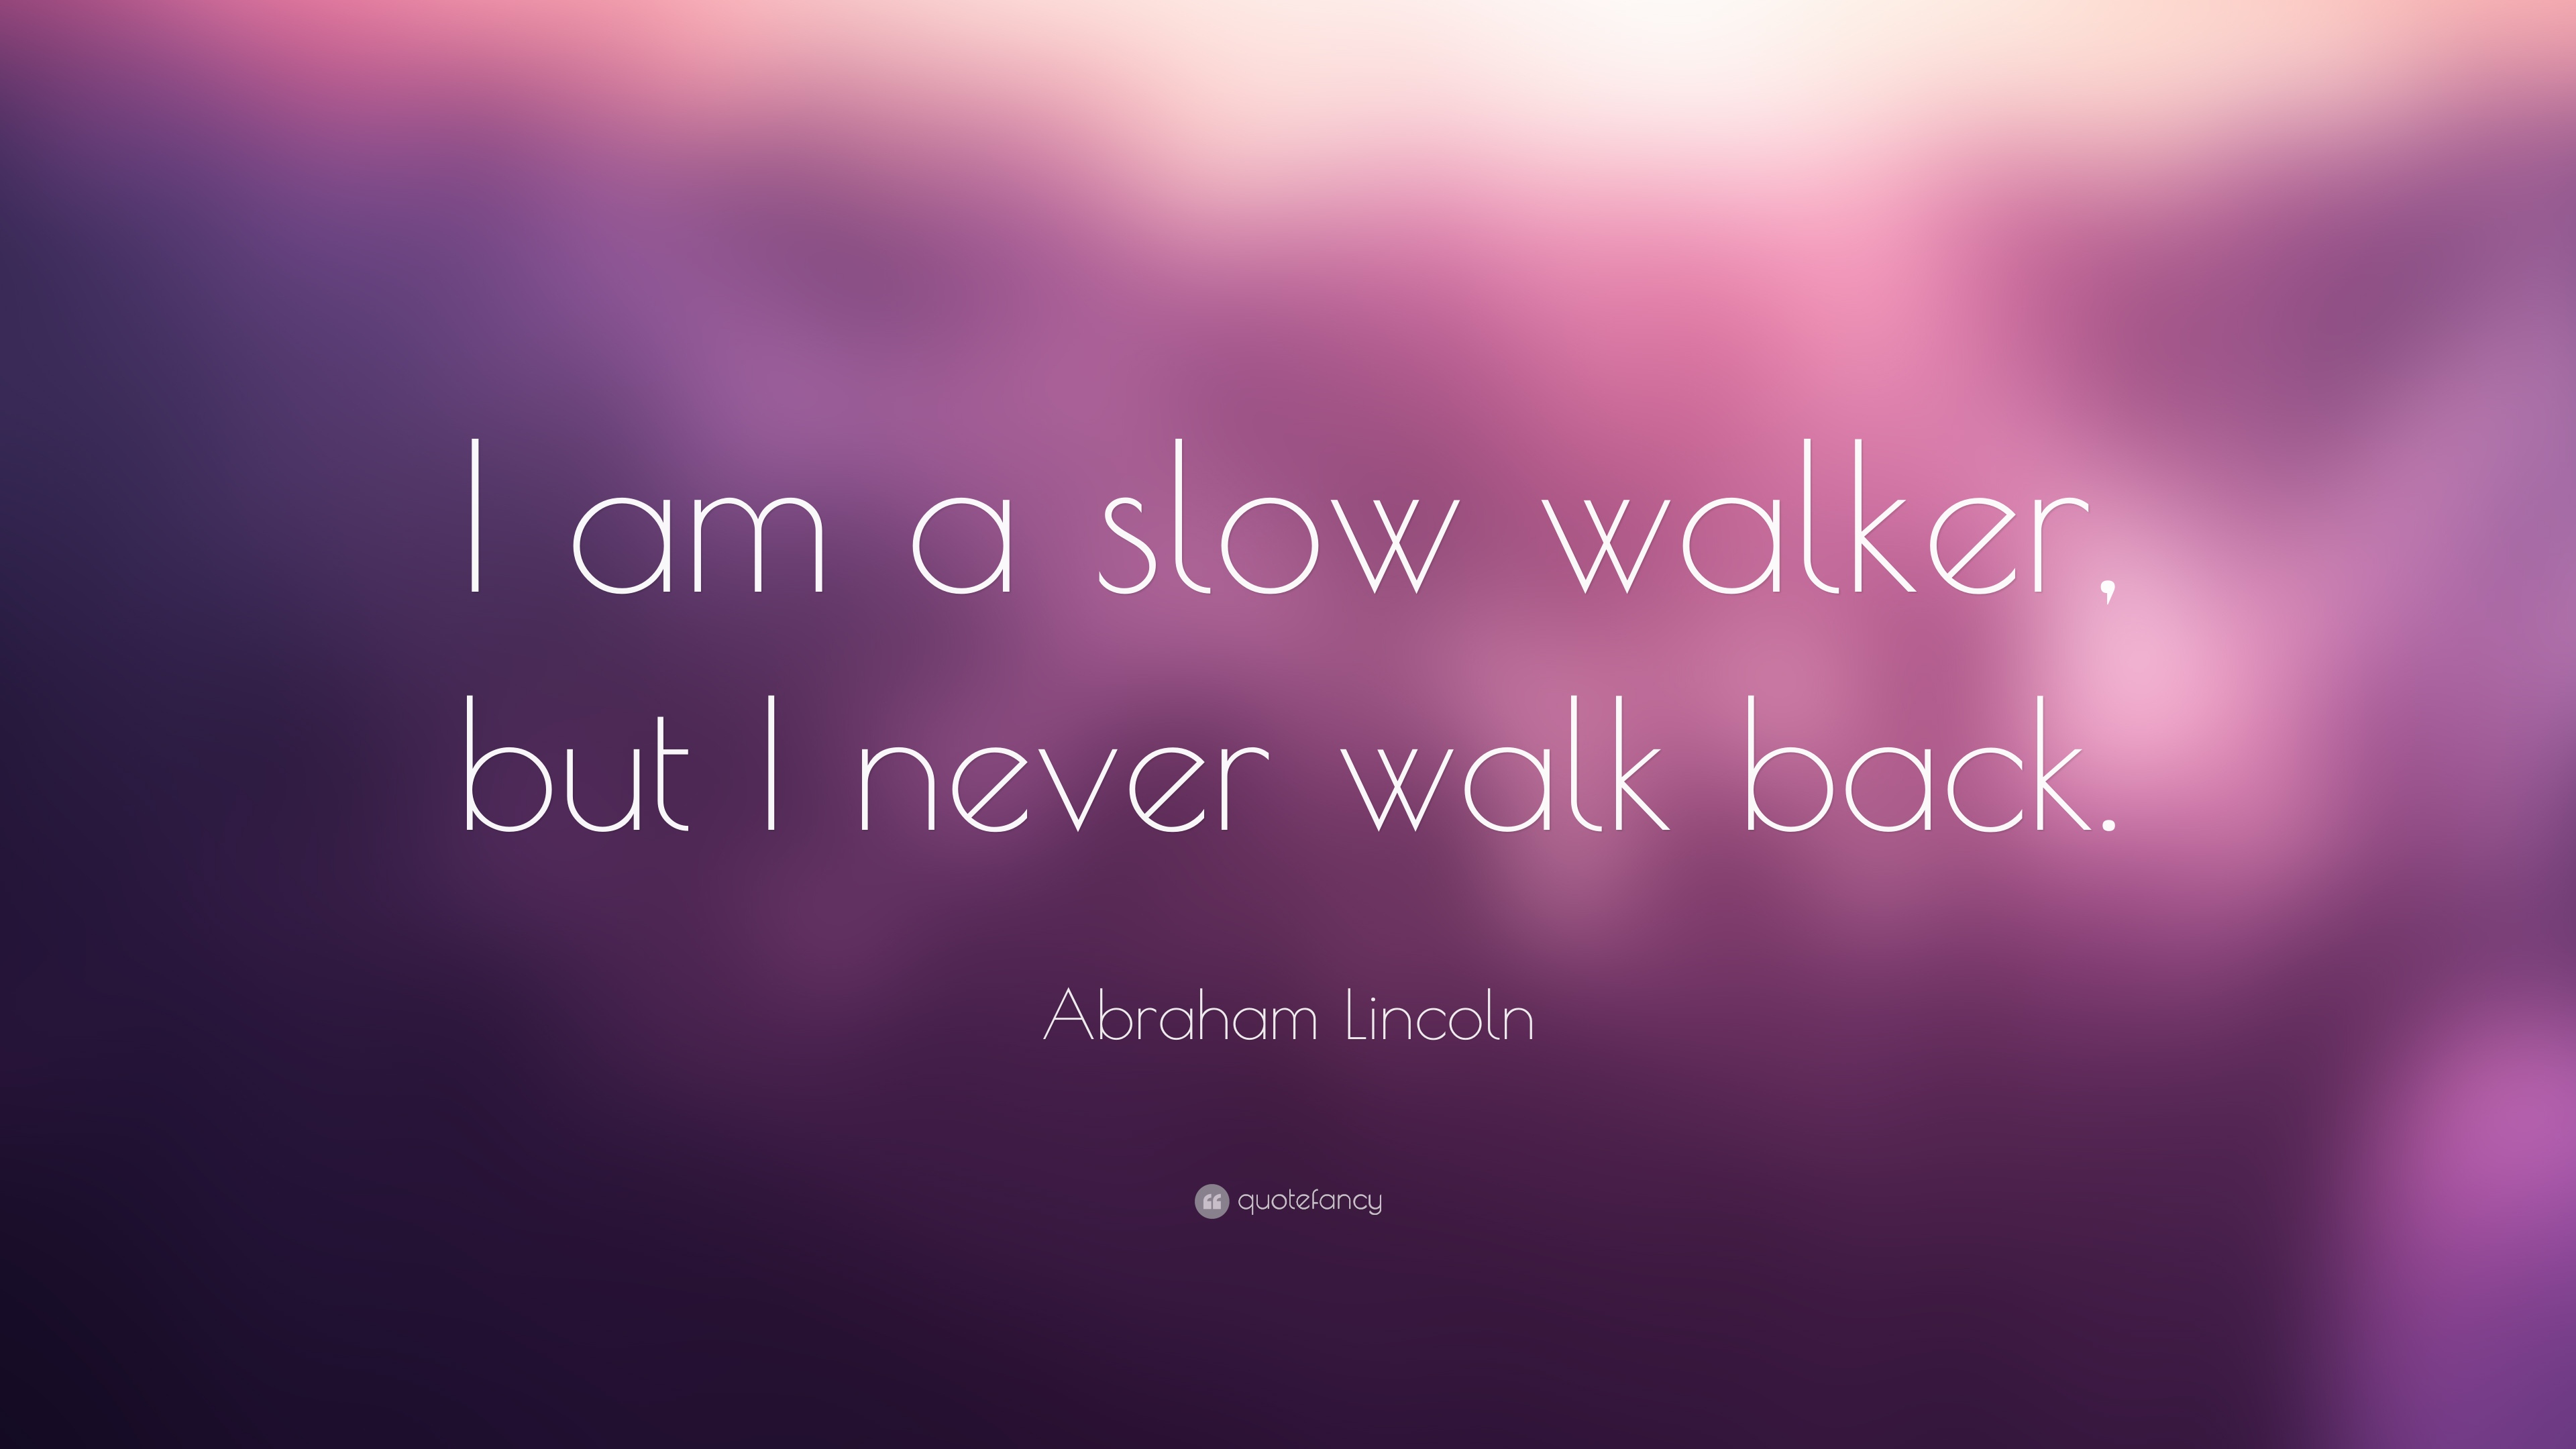 Abraham Lincoln Quotes I AM a Slow Walker